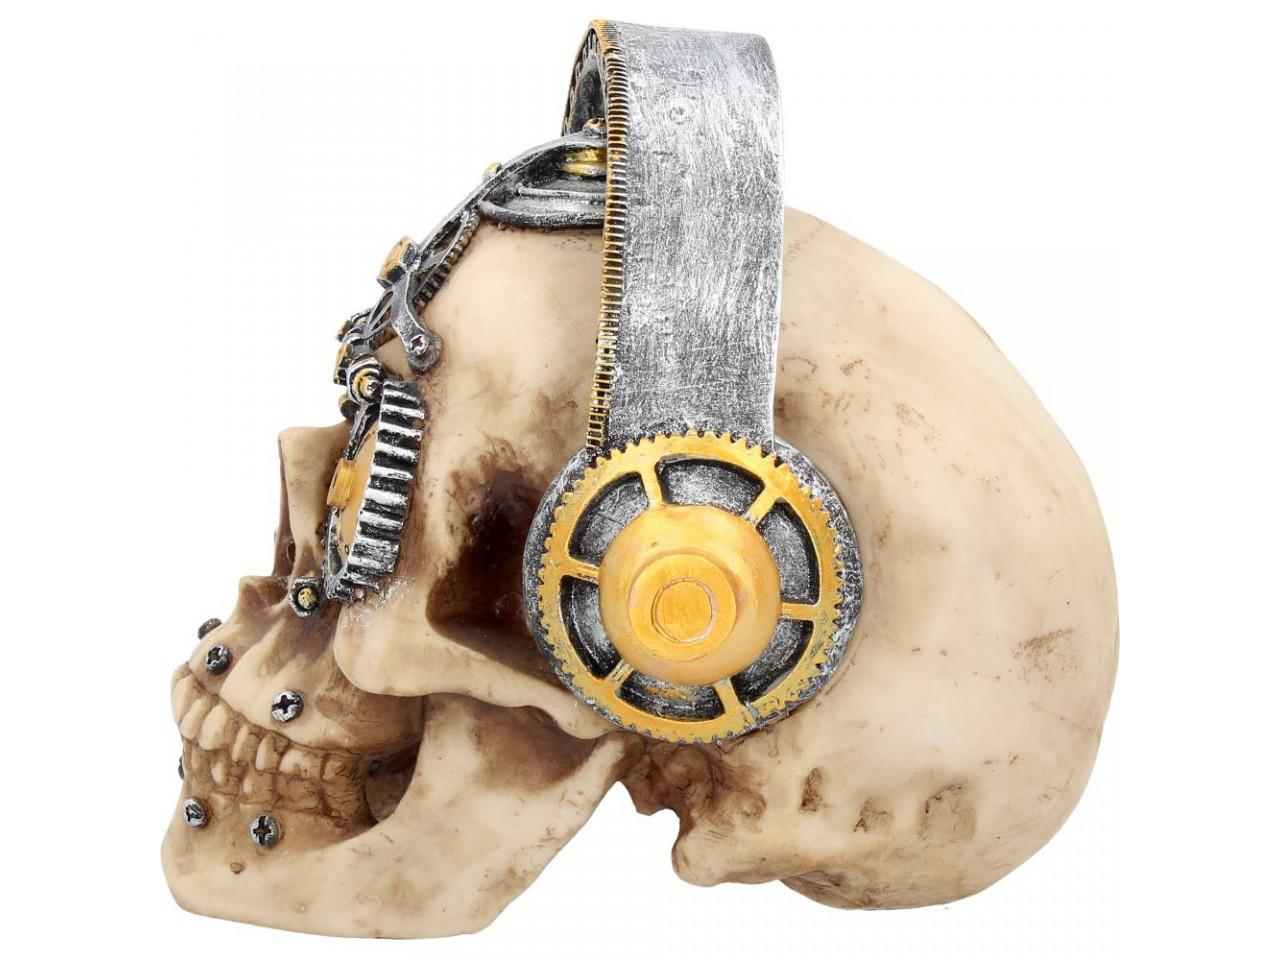 Techno Talk - Large (u2922h7) - steampunk skull sculpture